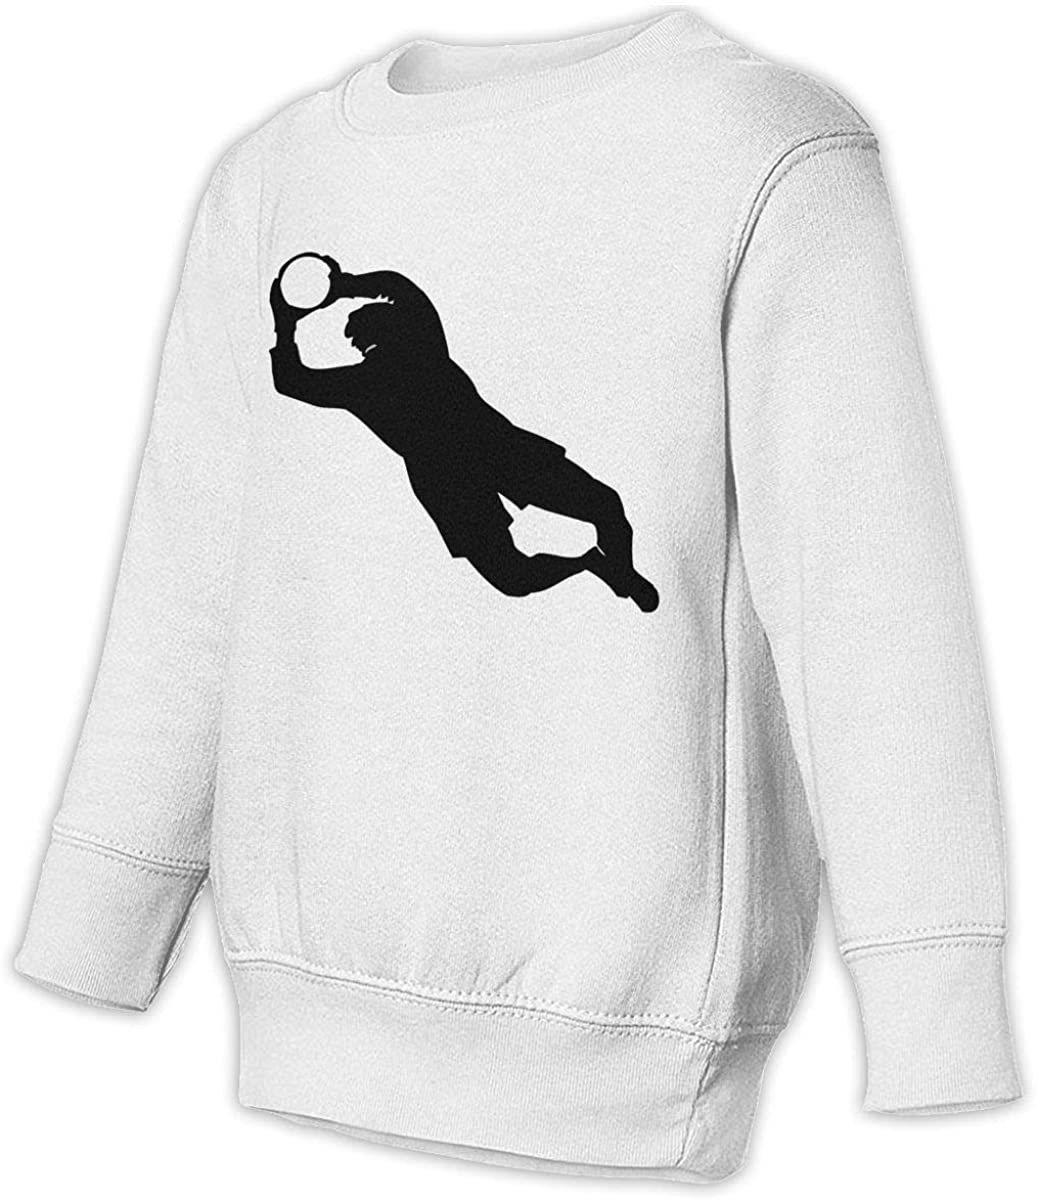 wudici Soccer Goalkeeper1 Boys Girls Pullover Sweaters Crewneck Sweatshirts Clothes for 2-6 Years Old Children